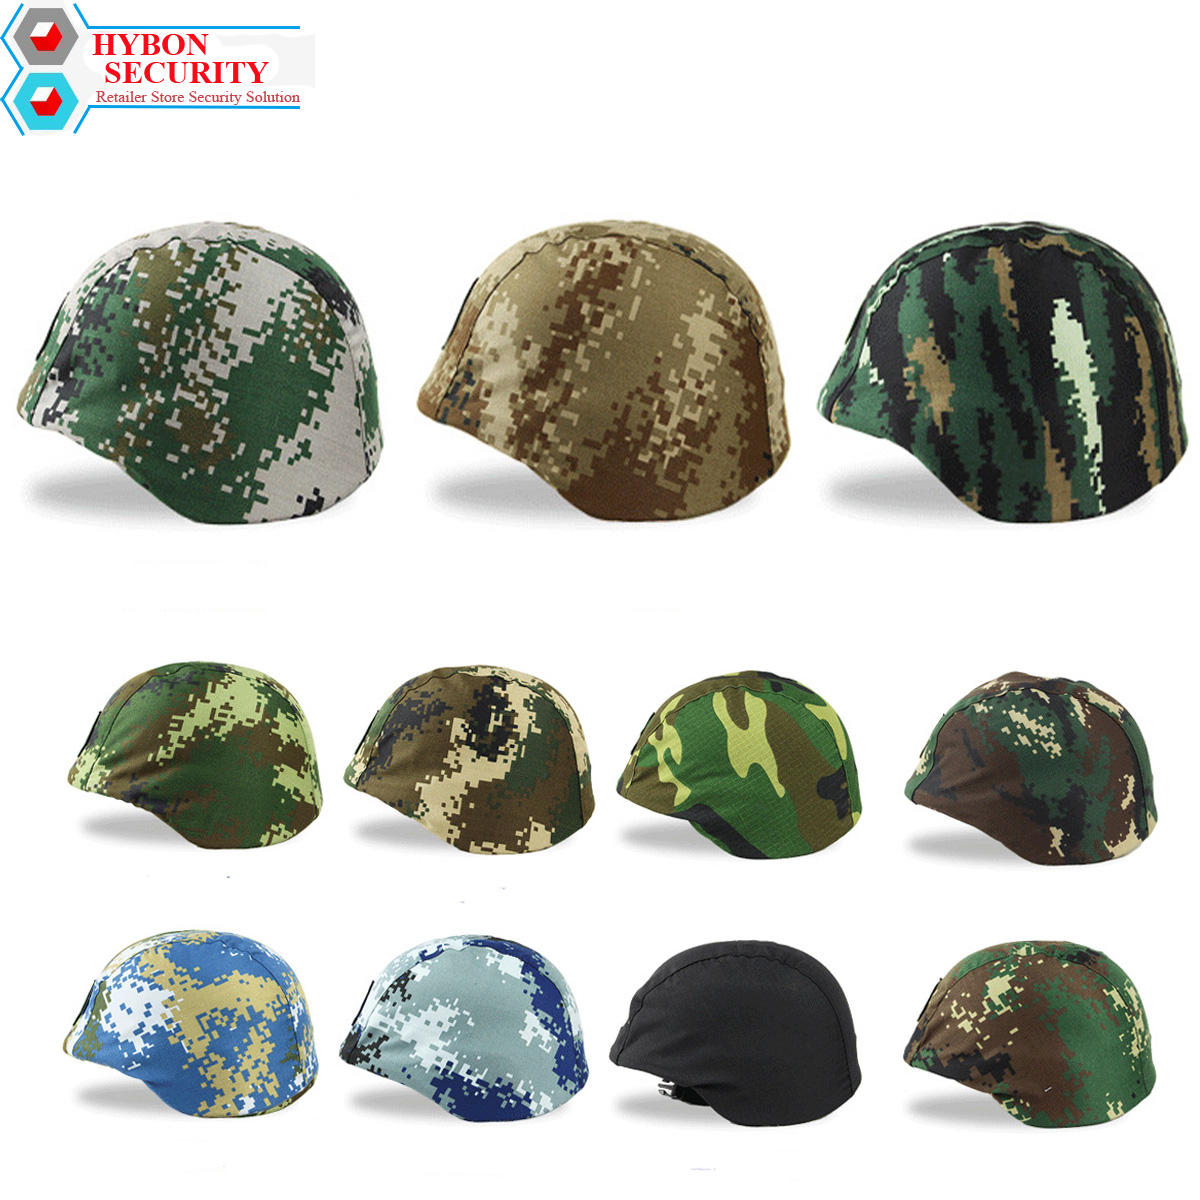 Outdoor Helmet Military Tactical Helmet Cotton M88 Kevlar Helm Covers Tactical Children Adult Helmet Protective Cover Accessory ccgk double layer m1 helmet steel and abs safety helmet military tactical protective equipment outdoor cs survival collection